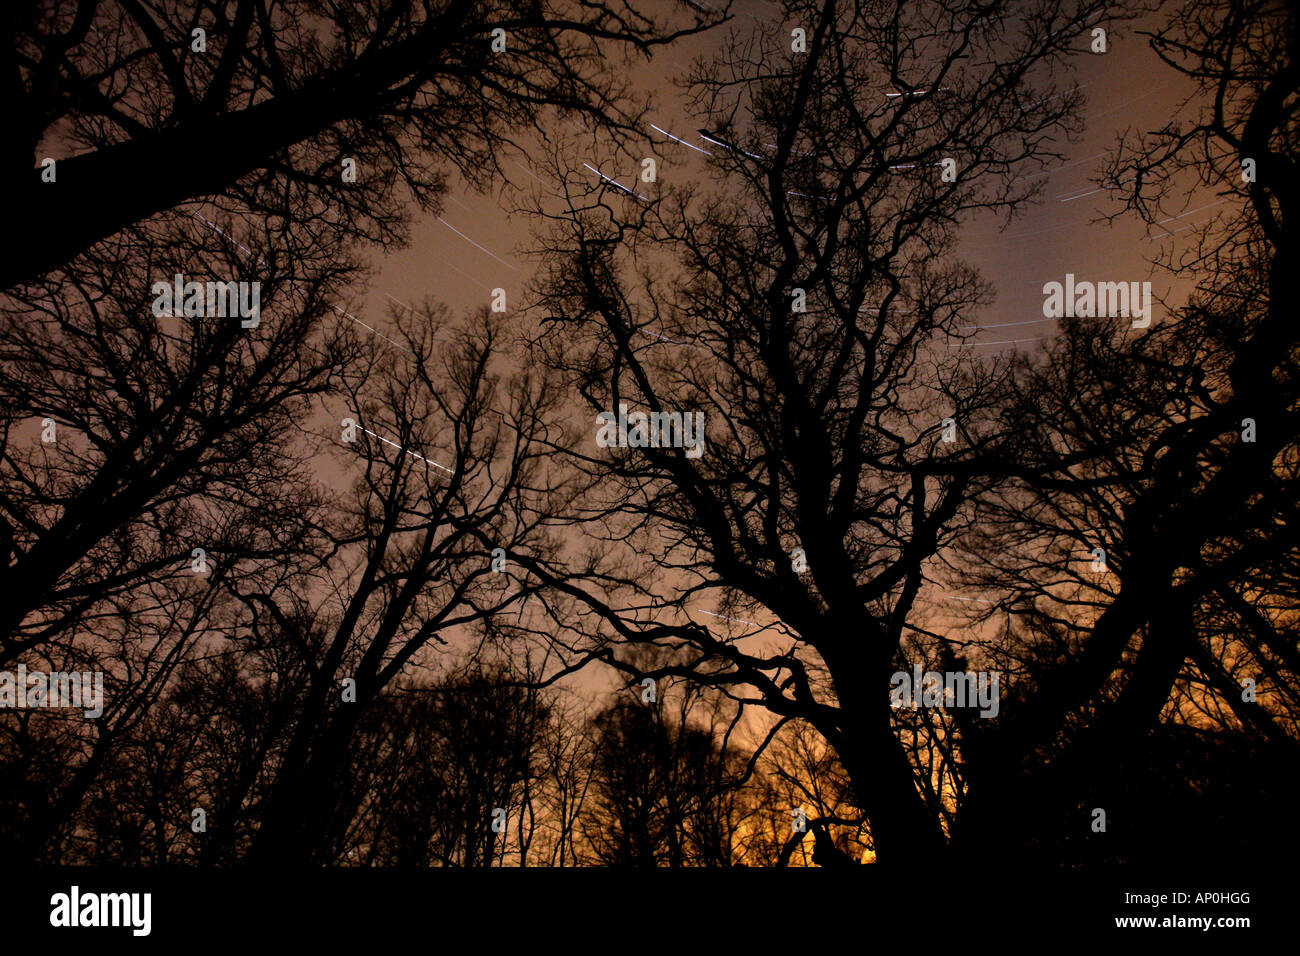 Starstreaks and old trees at Telemarkslunden, a protected forest, in Rygge kommune, Østfold fylke, Norway. - Stock Image